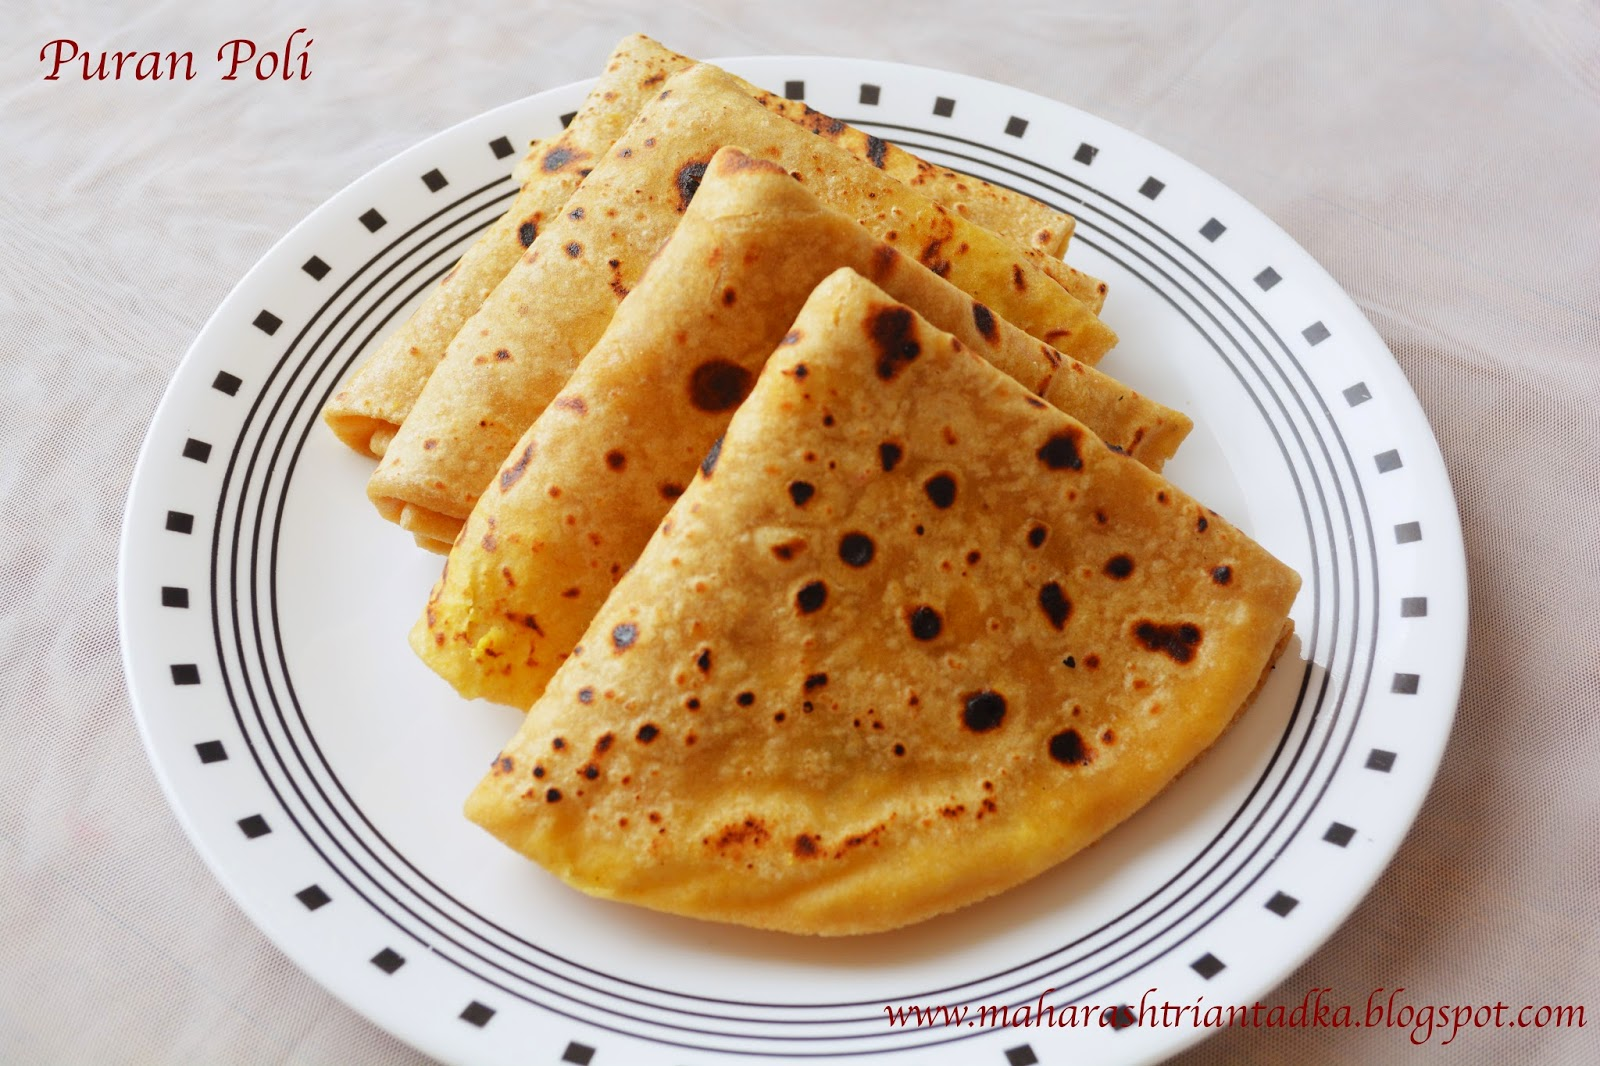 Heat The Pan And Roast The Puran Poli Well From Both Sides Apply Ghee Clarified Butter To Puran Poli Puran Poli Is Ready